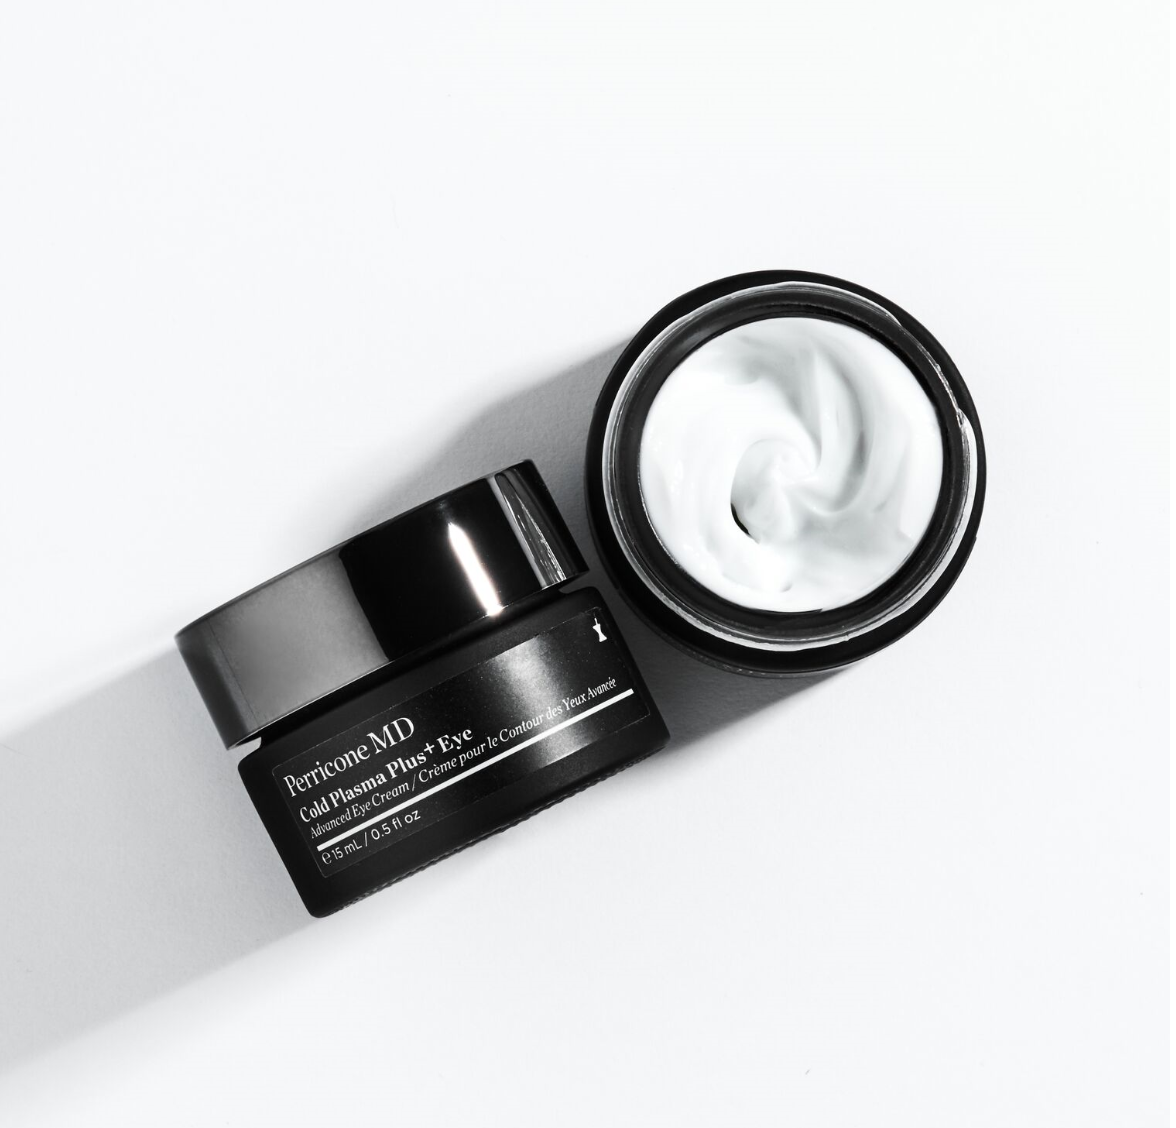 But First, Skincare: How-To Make Aging Skin Look and Feel Its Best (Naturally) | Cold Plasma Plus+ Eye Perricone MD